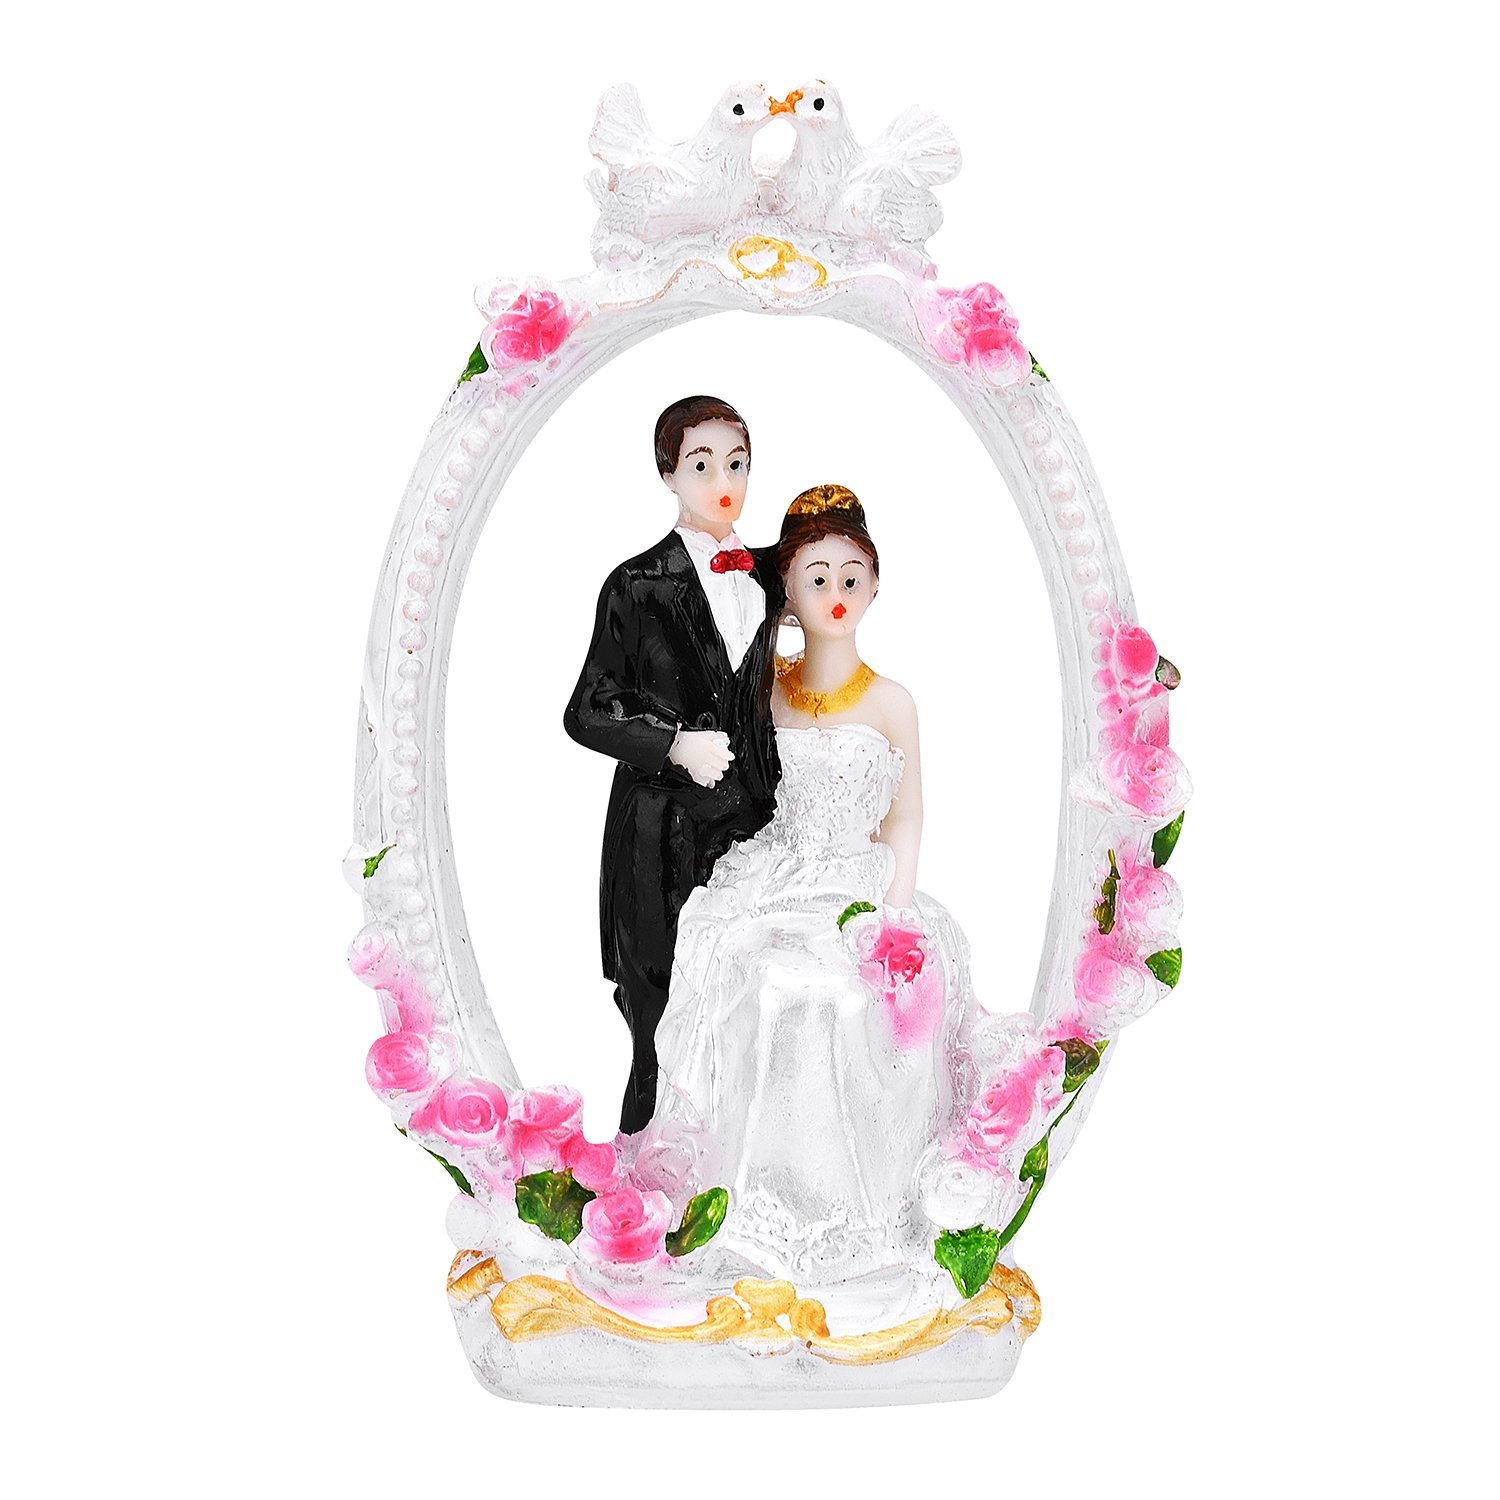 TtoyouU Wedding Couple Cake Topper Bride and Groom Cake Topper Couple Figurine-Birds and Wreath